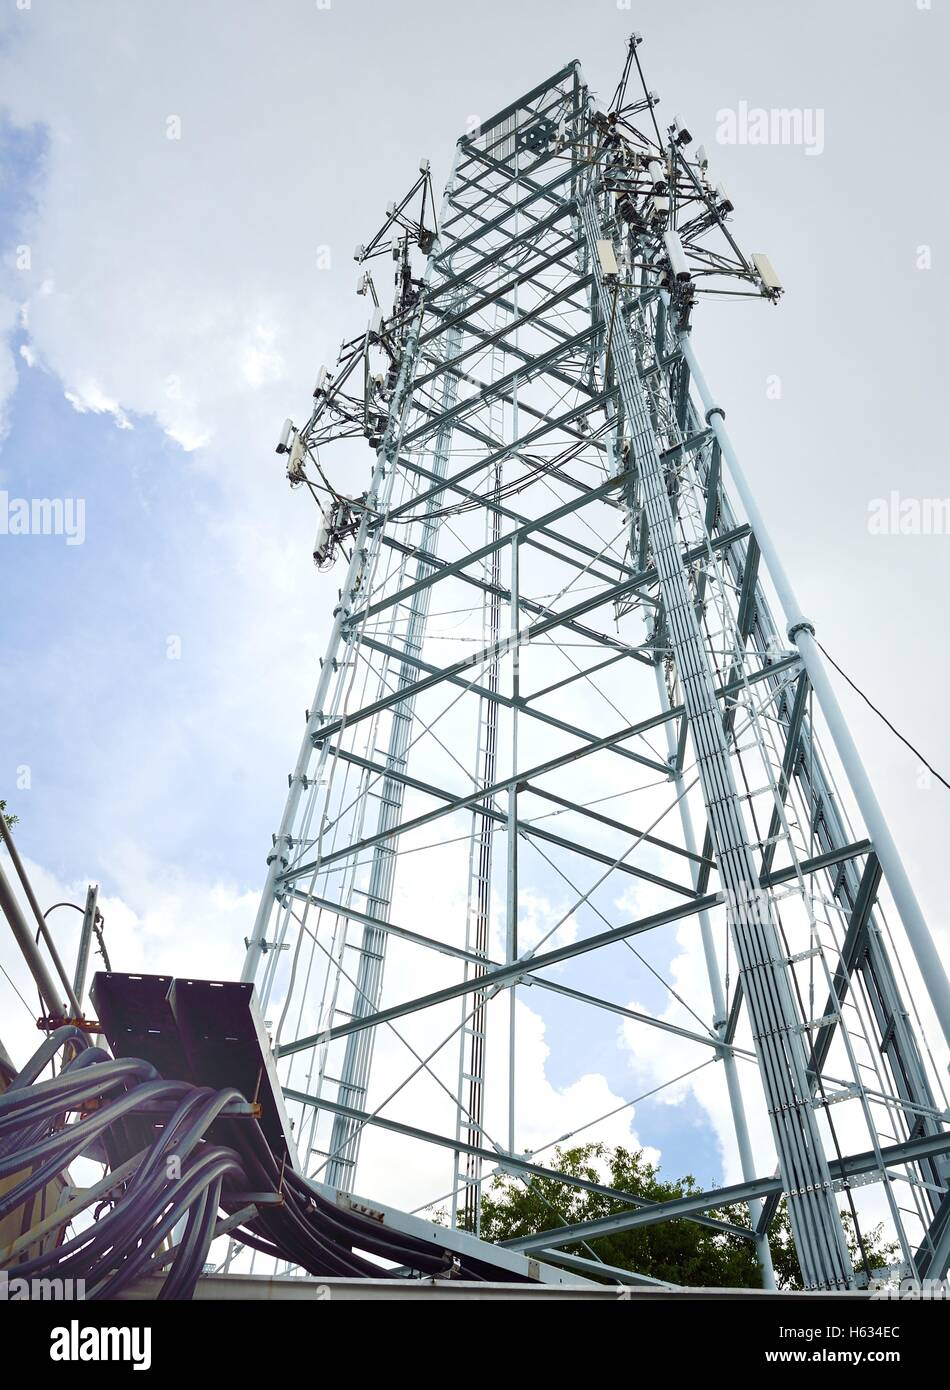 Cell Phones Tower - Stock Image